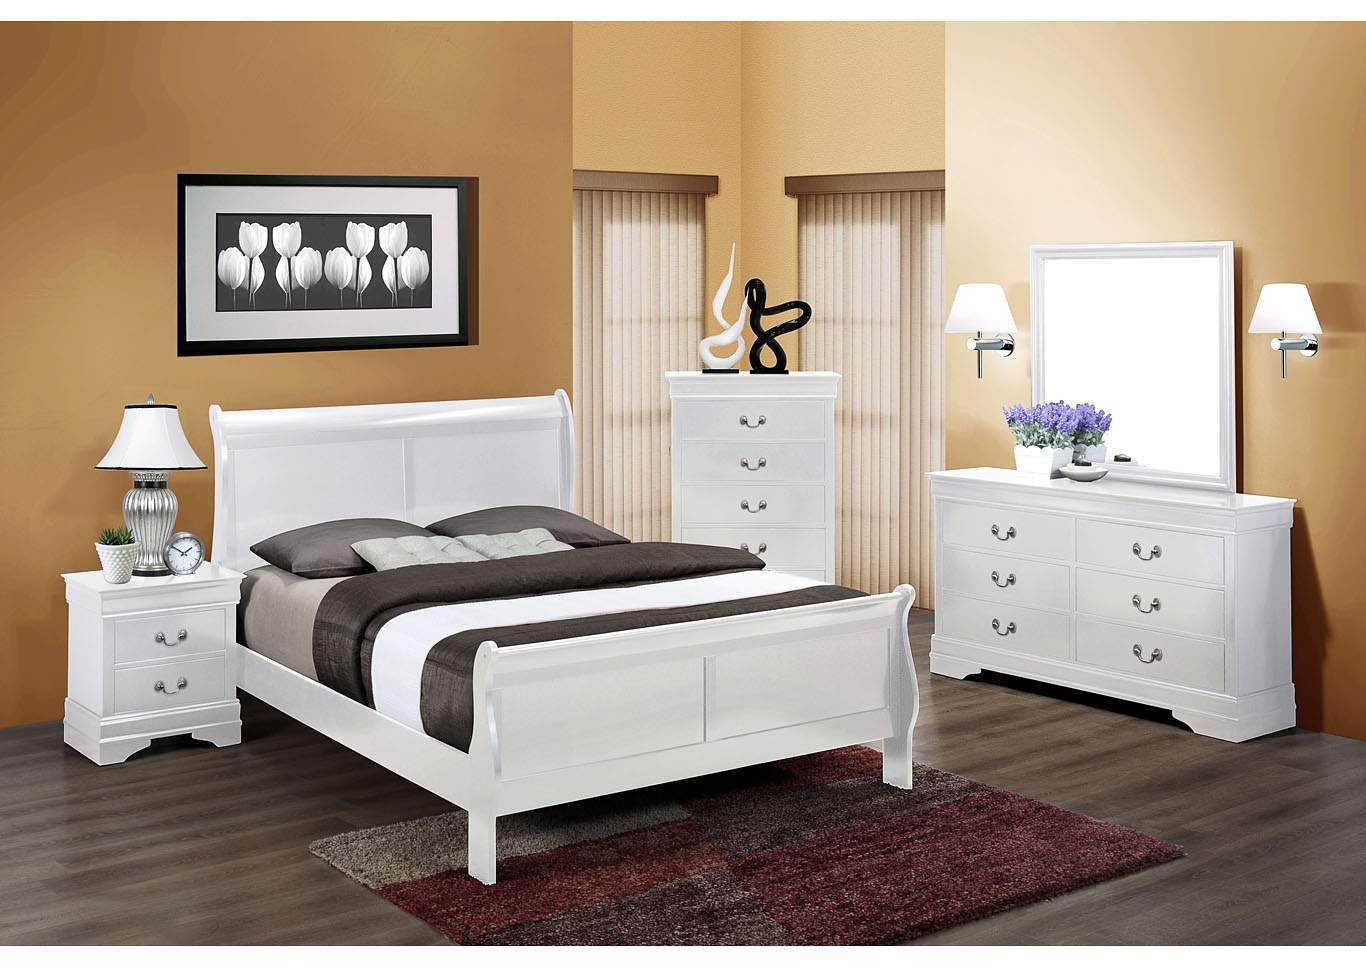 Louis Philip White Full Sleigh Bed w/6 Drawer Dresser, Mirror and 5 Drawer Chest,Crown Mark